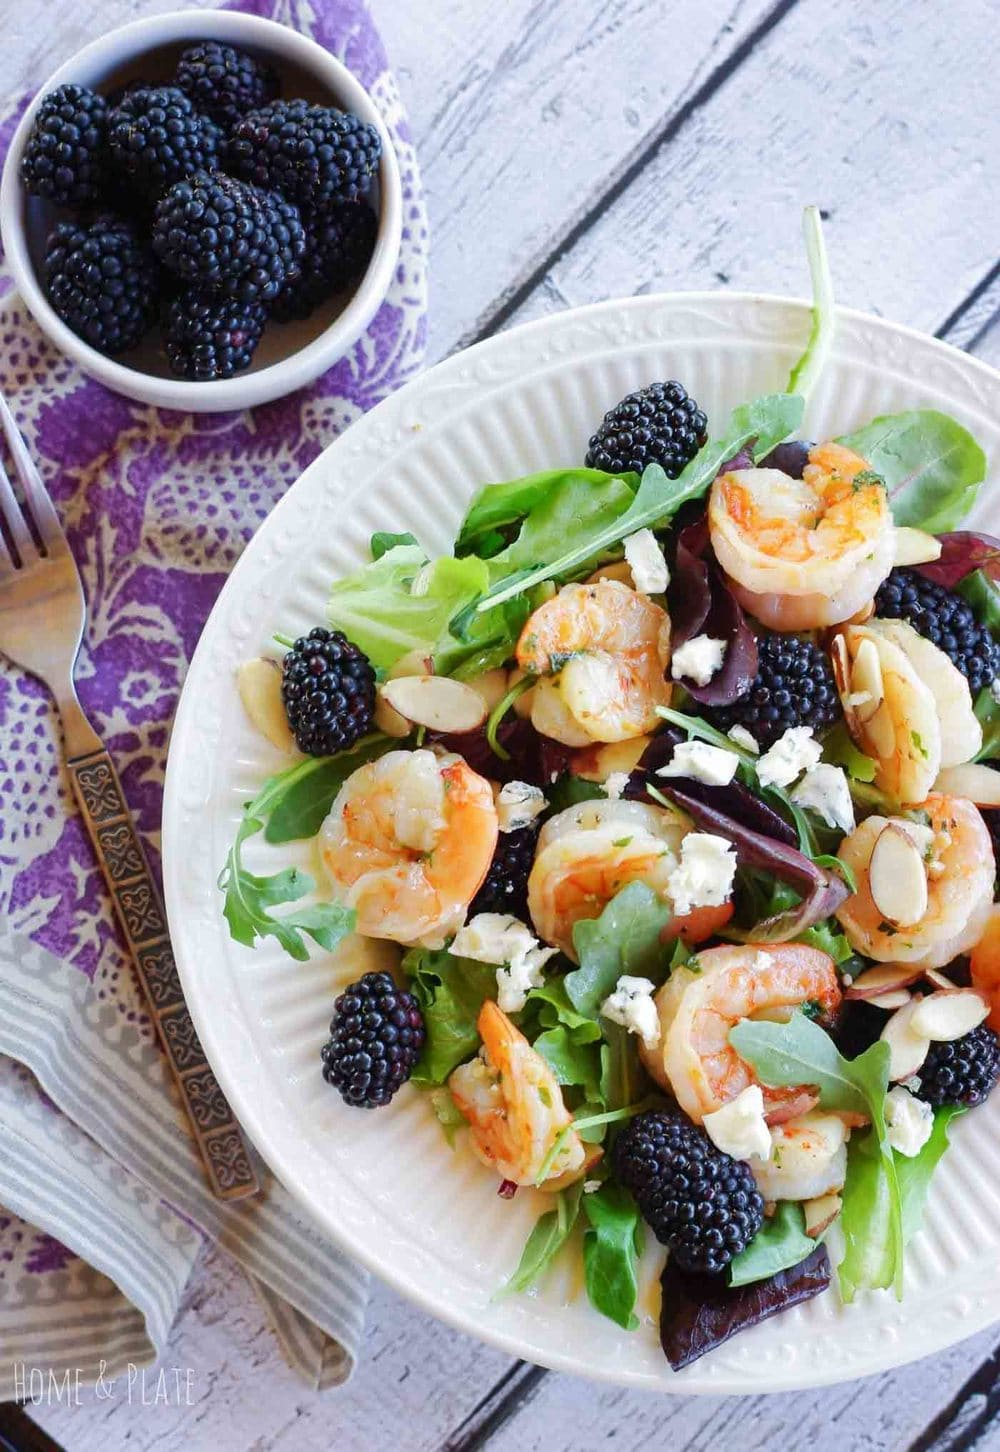 Grilled Shrimp Salad with Blackberries | www.homeandplate.com | Fresh shrimp grilled pink to perfection is the perfect source of protein for any summer salad. Toss in some nectar sweet blackberries, crunchy almonds and crumbled blue cheese for a lunch worthy meal.